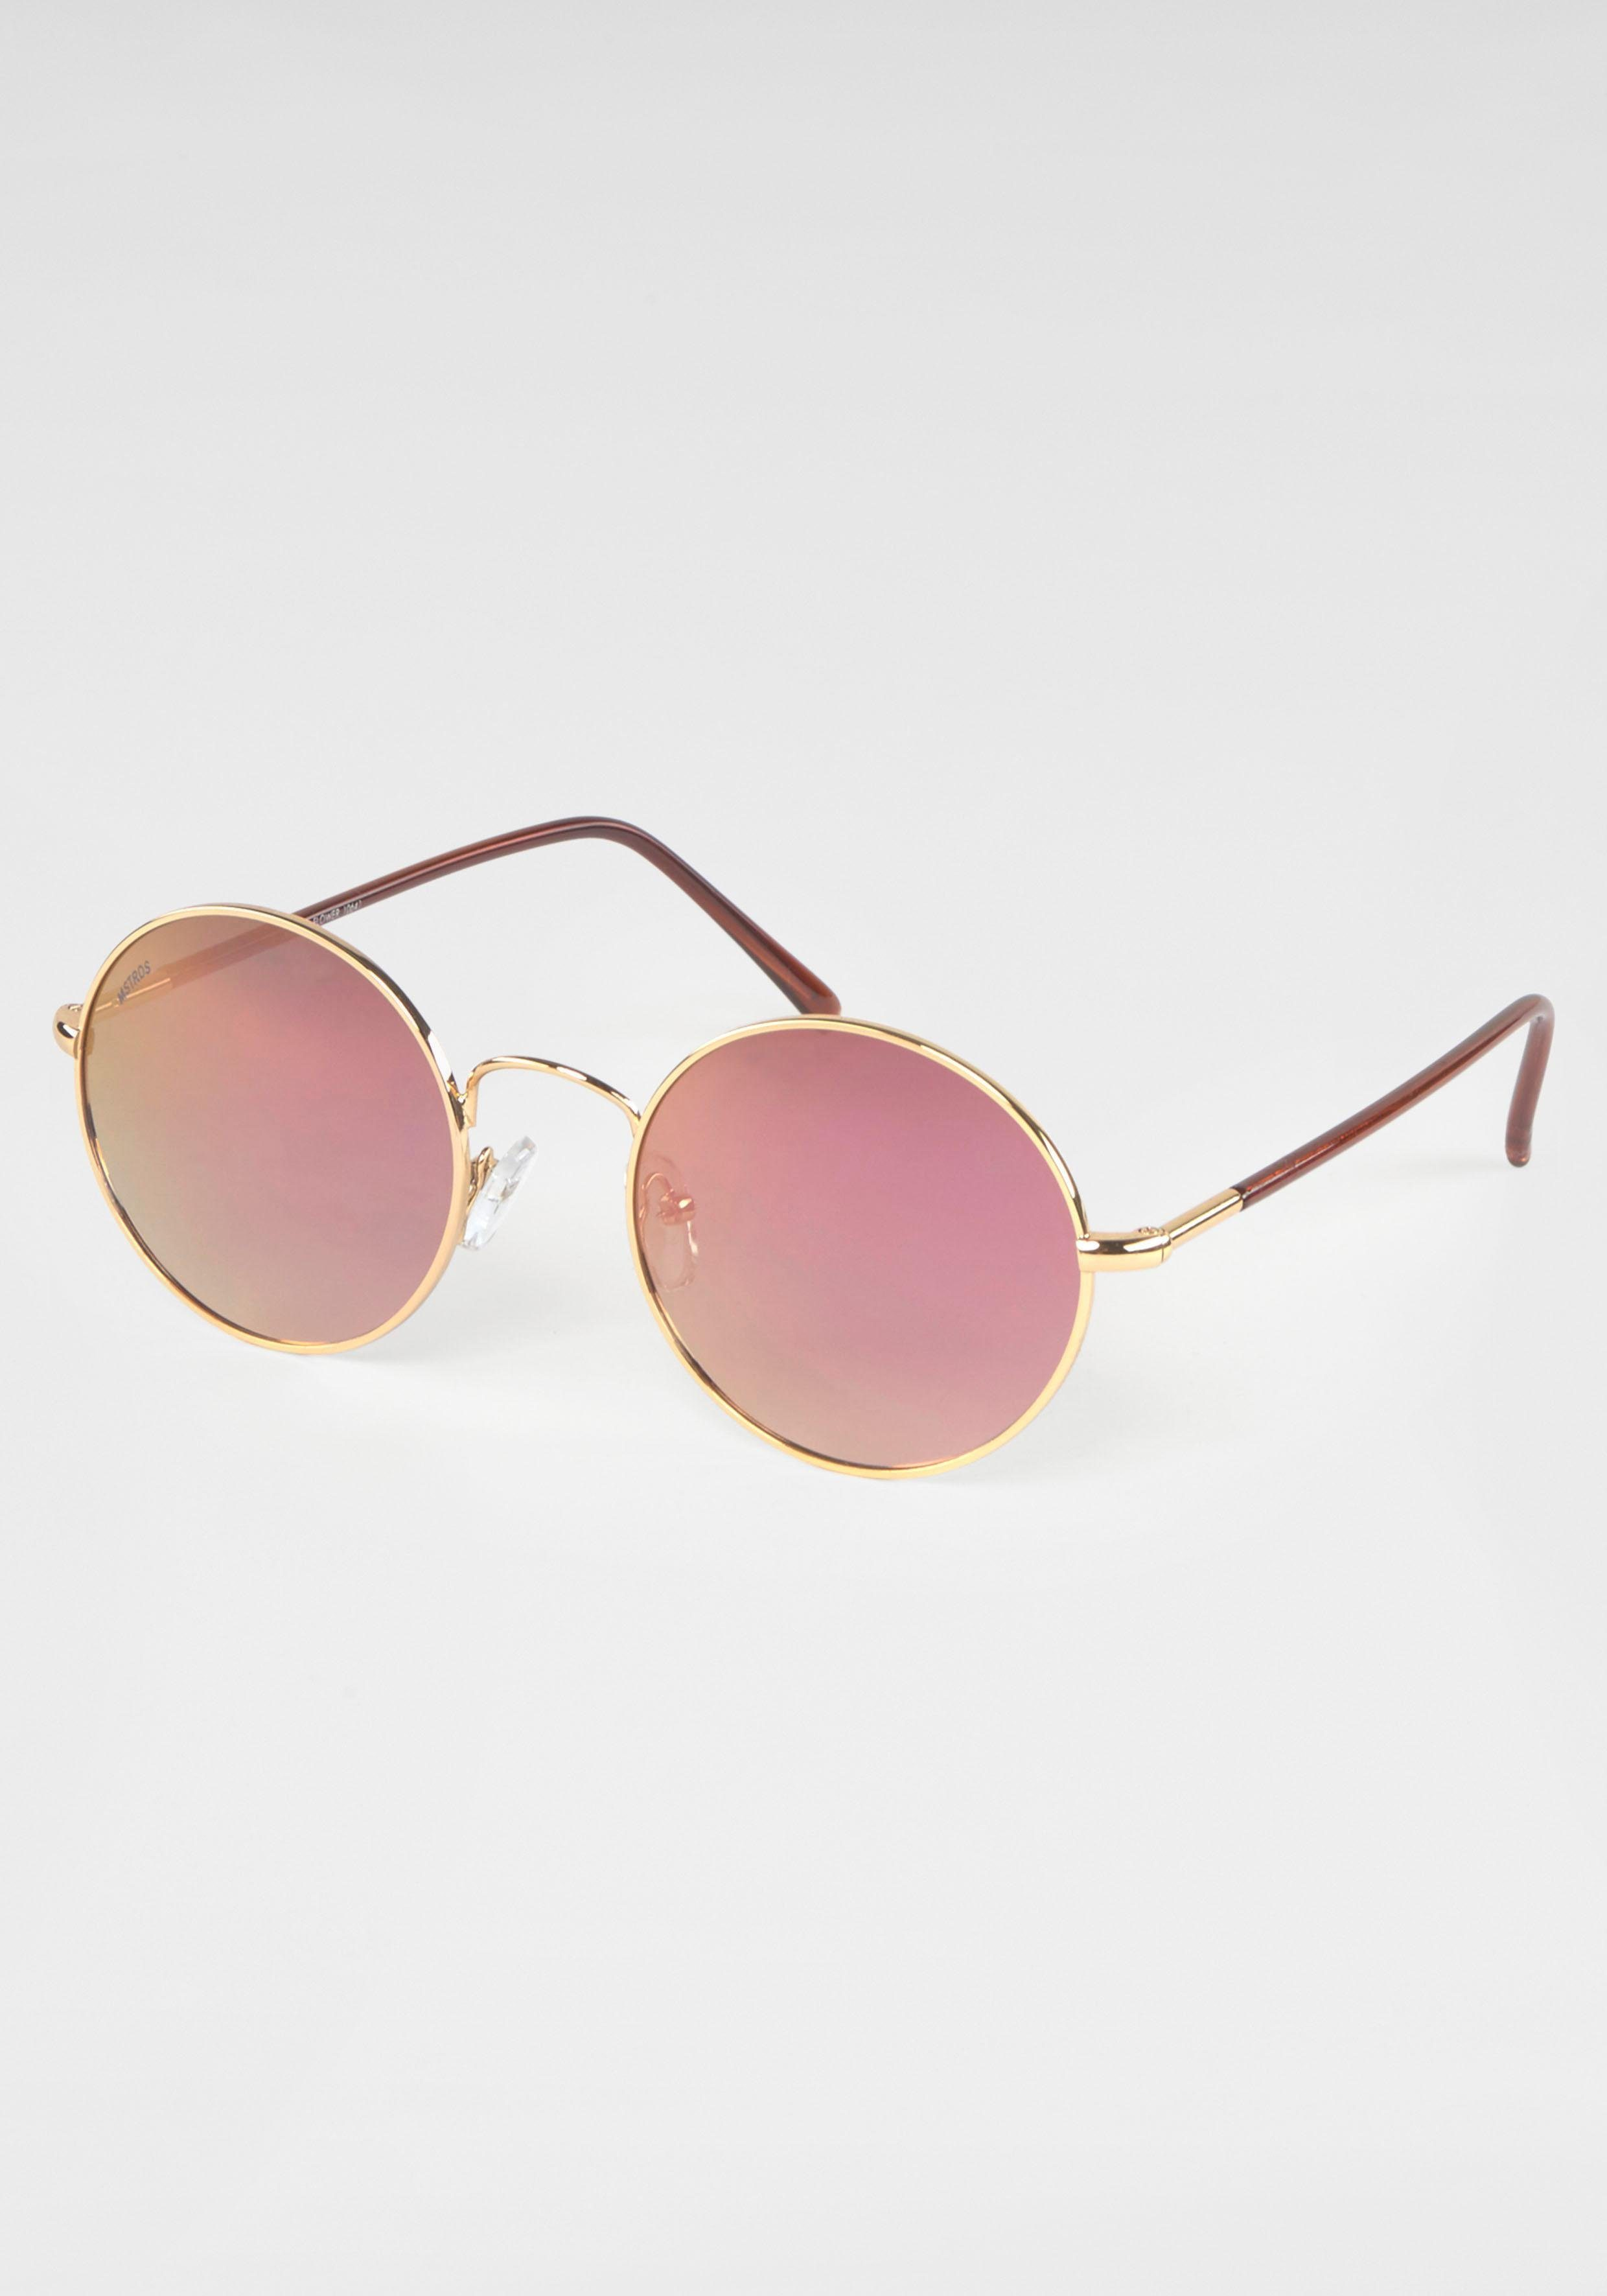 MSTRDS Retrosonnenbrille Circular, Hippie Look, Sixties Style